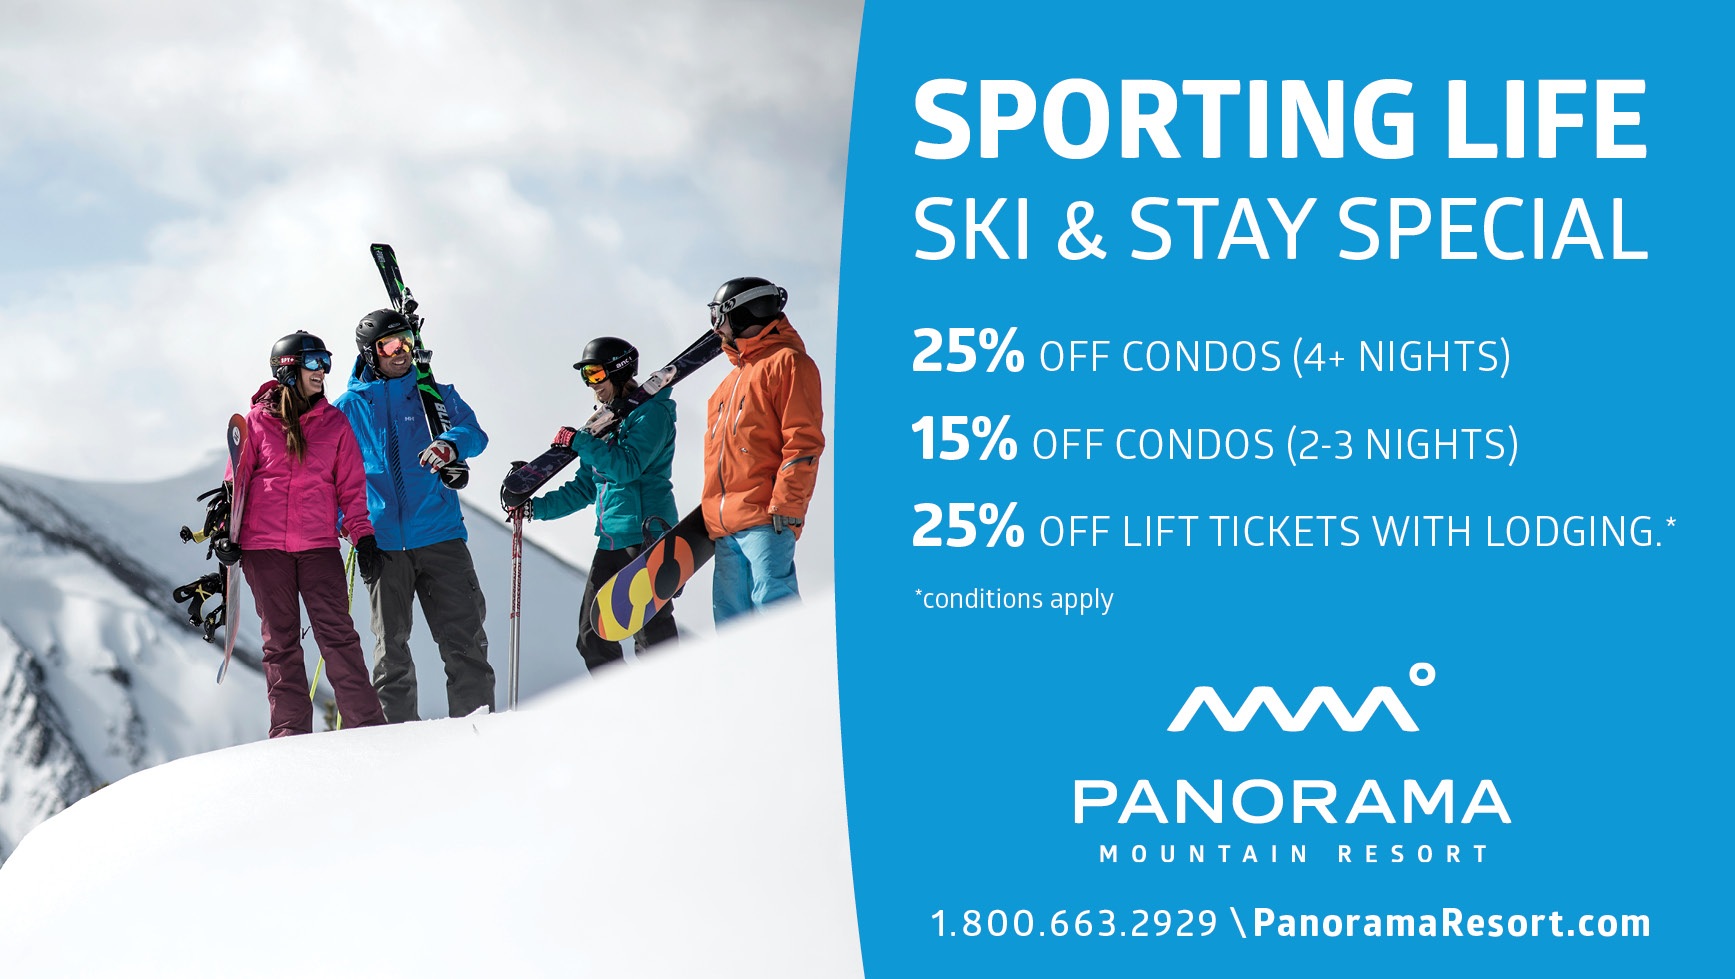 Panorama Resort Ski & Stay Special